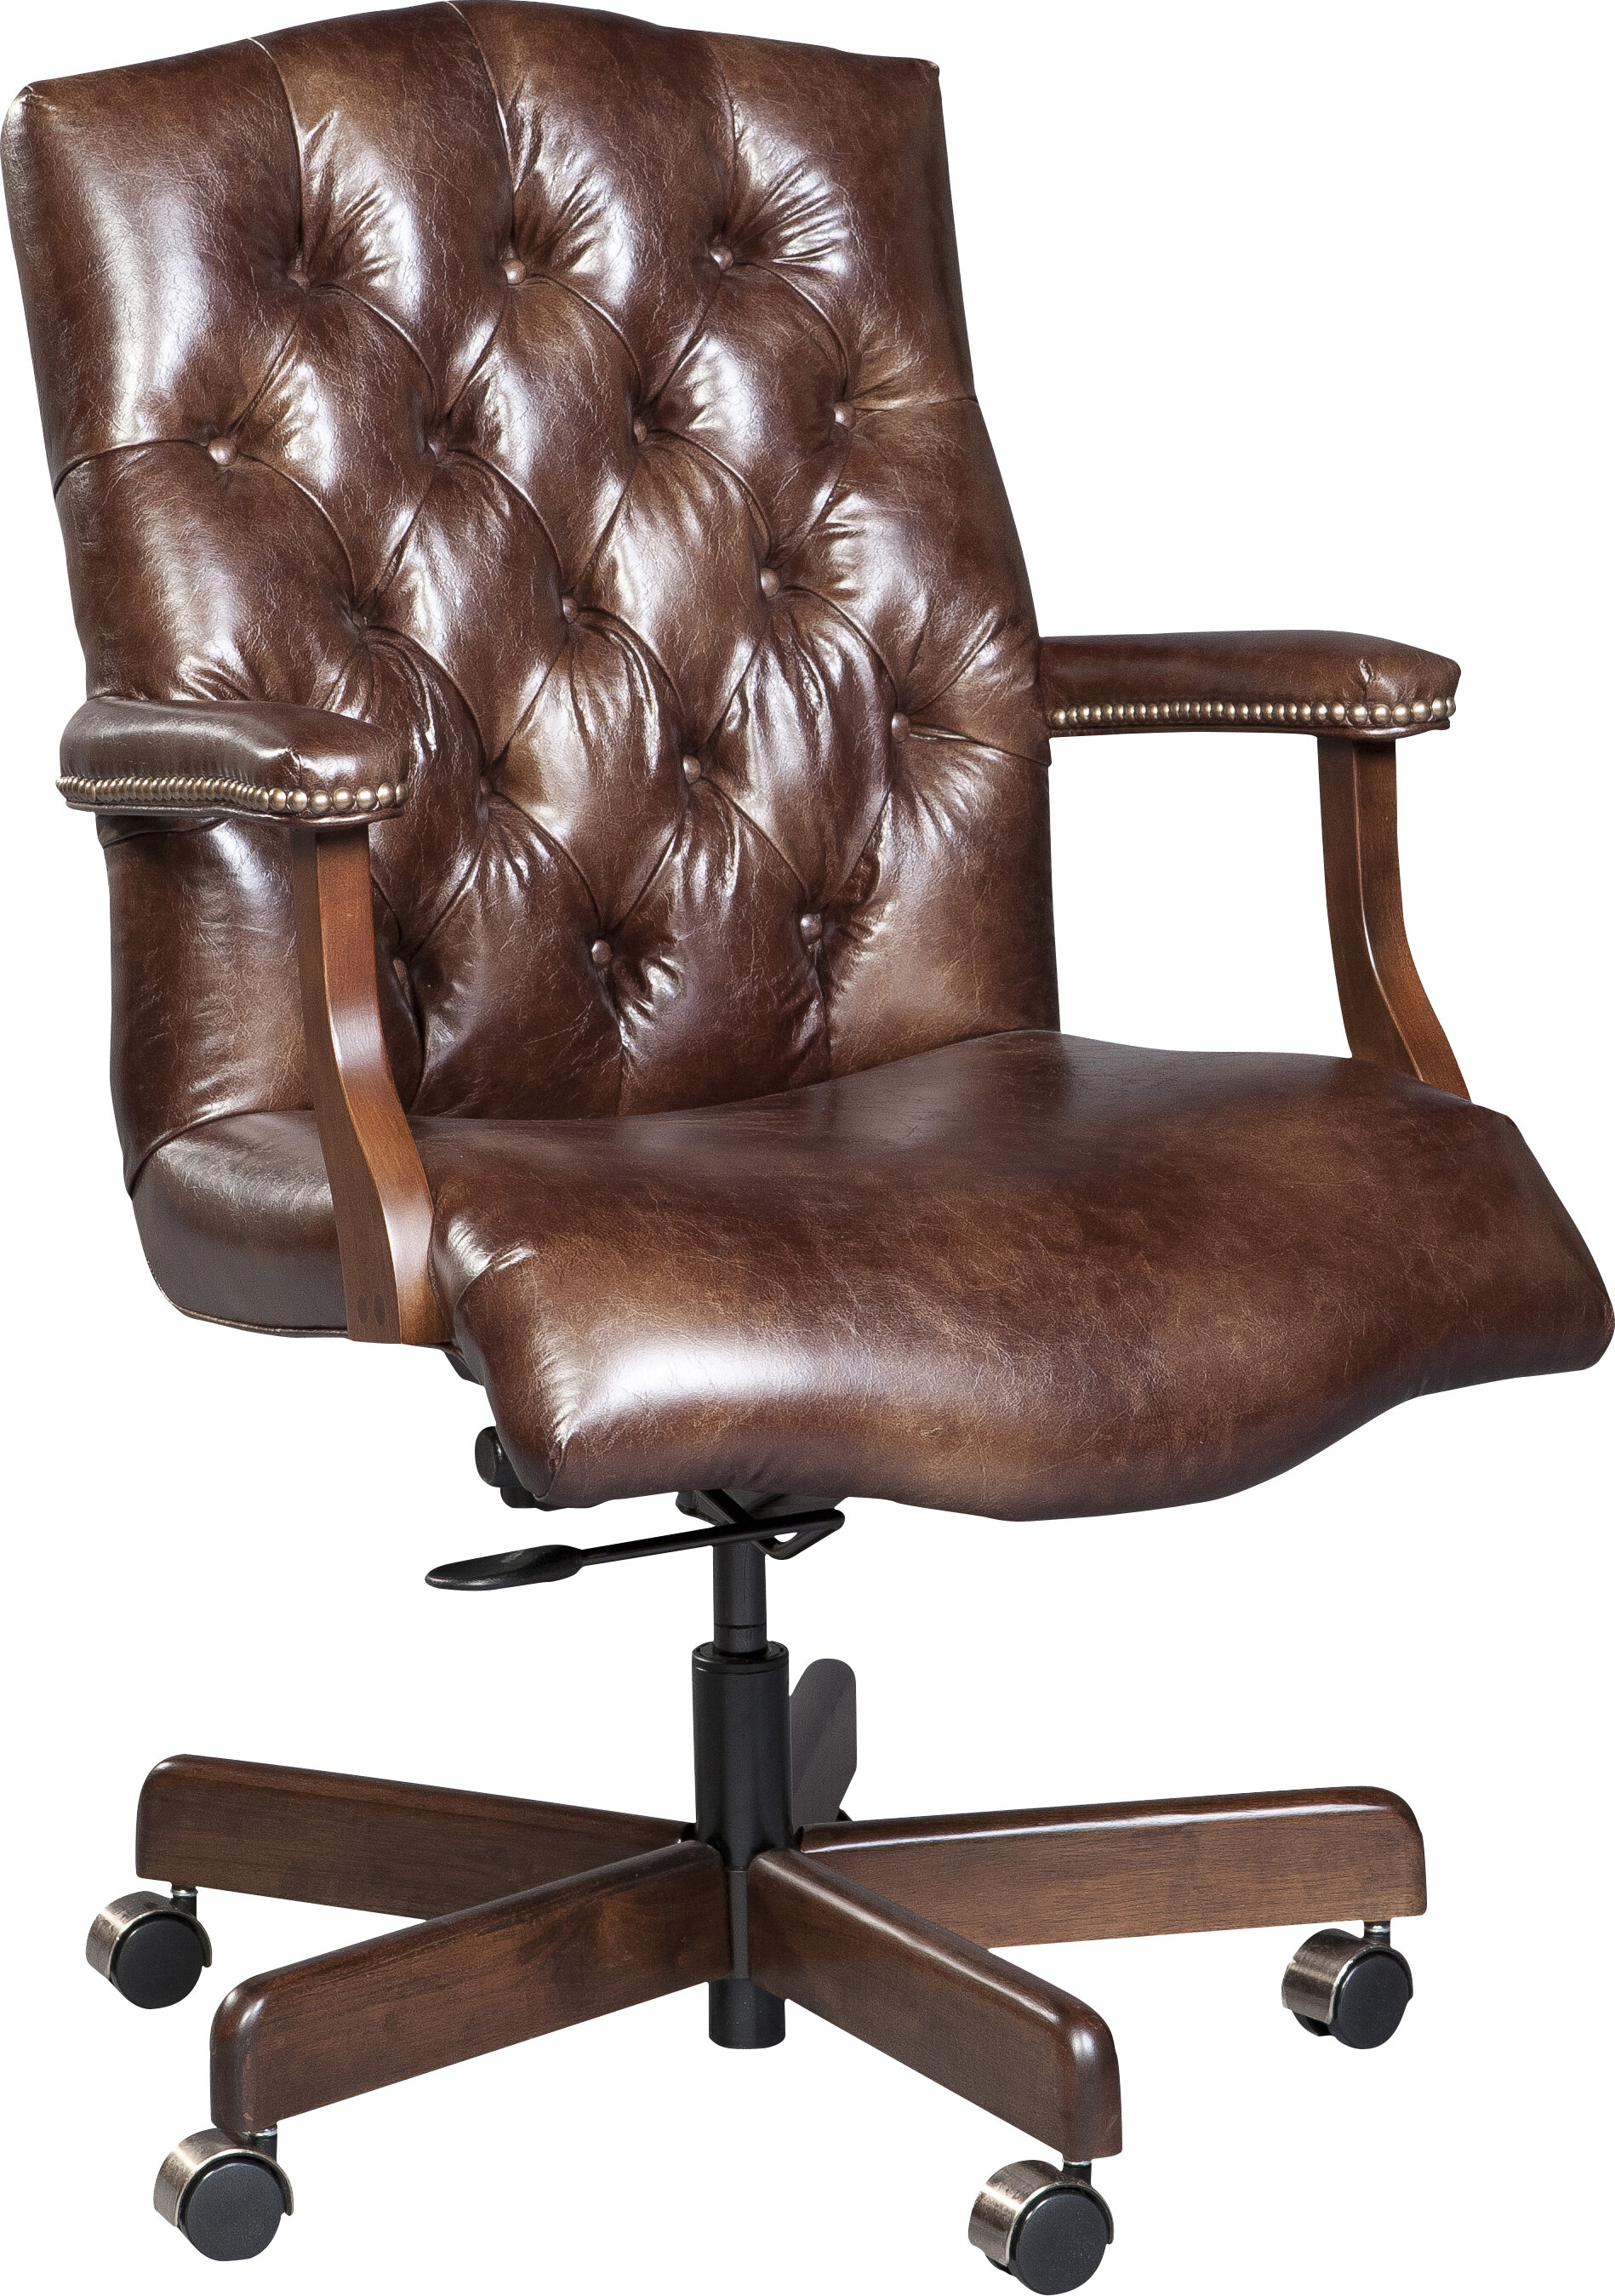 Fairfield Chair Executive Reviews